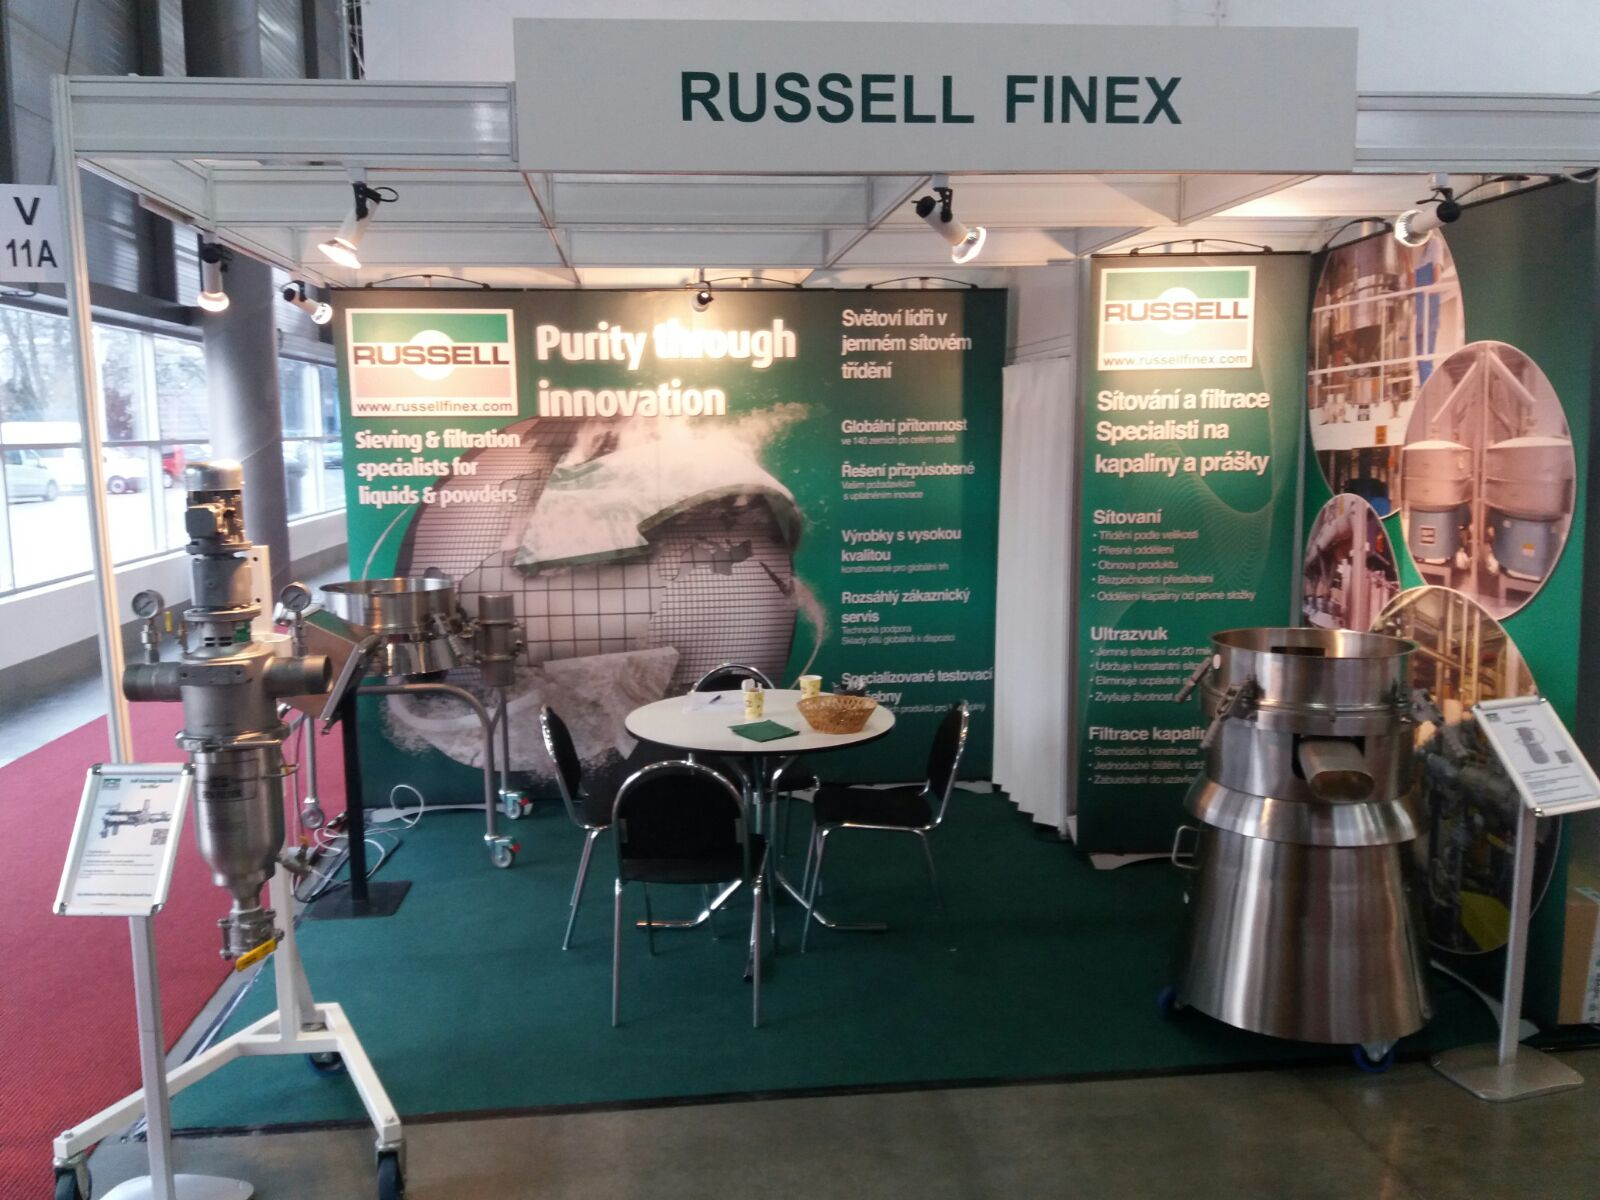 Russell Finex participated at Salima 2018 in BRNO in Hall V Stand 011A